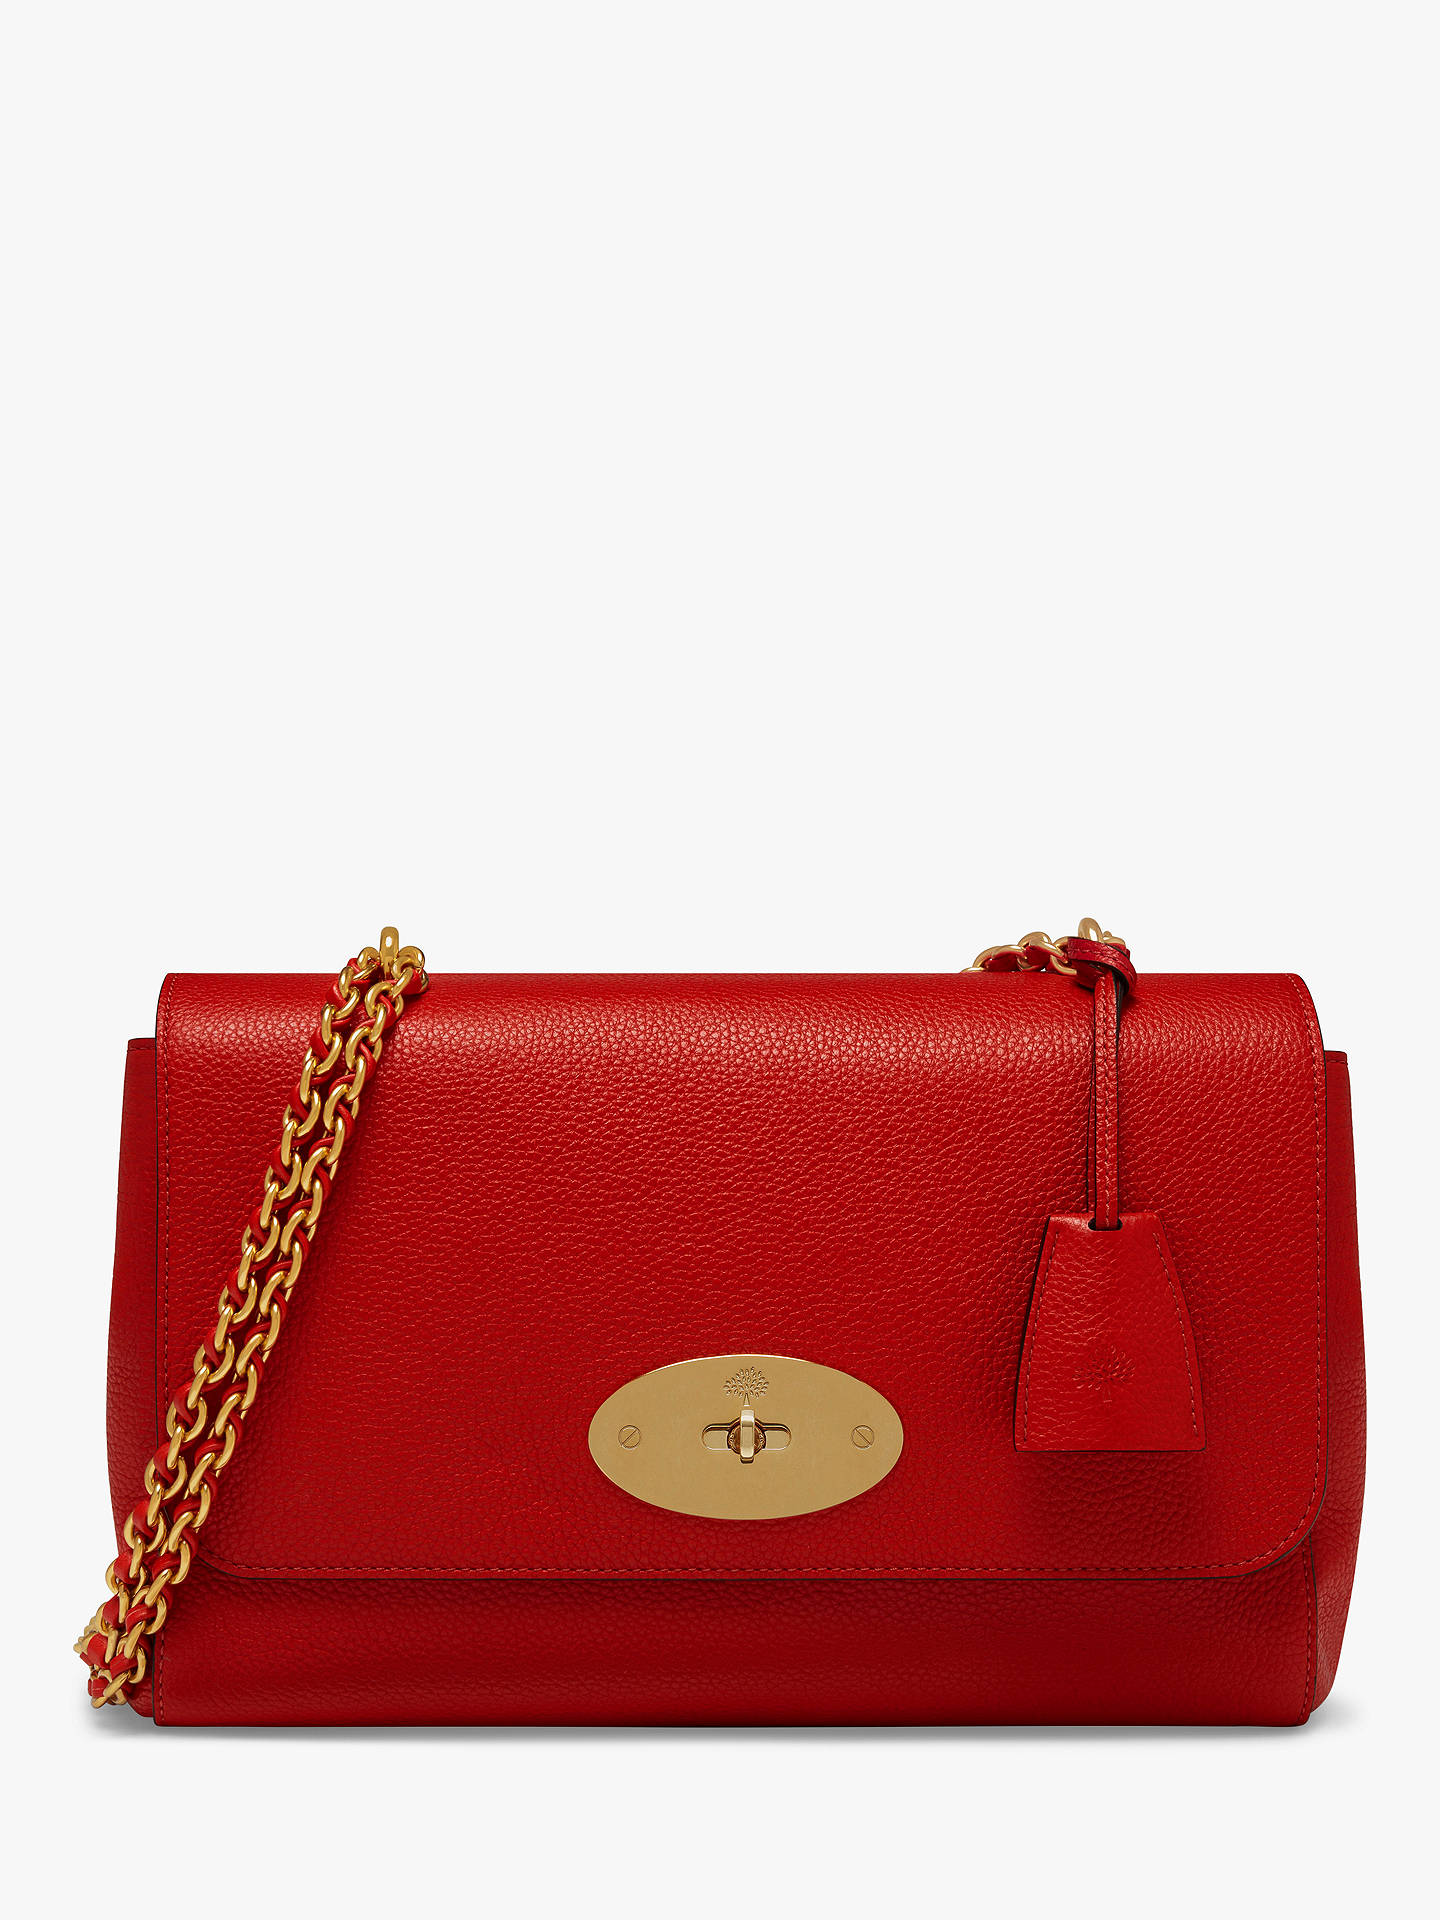 16a33c59caa1 Mulberry Medium Lily Classic Grain Leather Shoulder Bag, Ruby Red